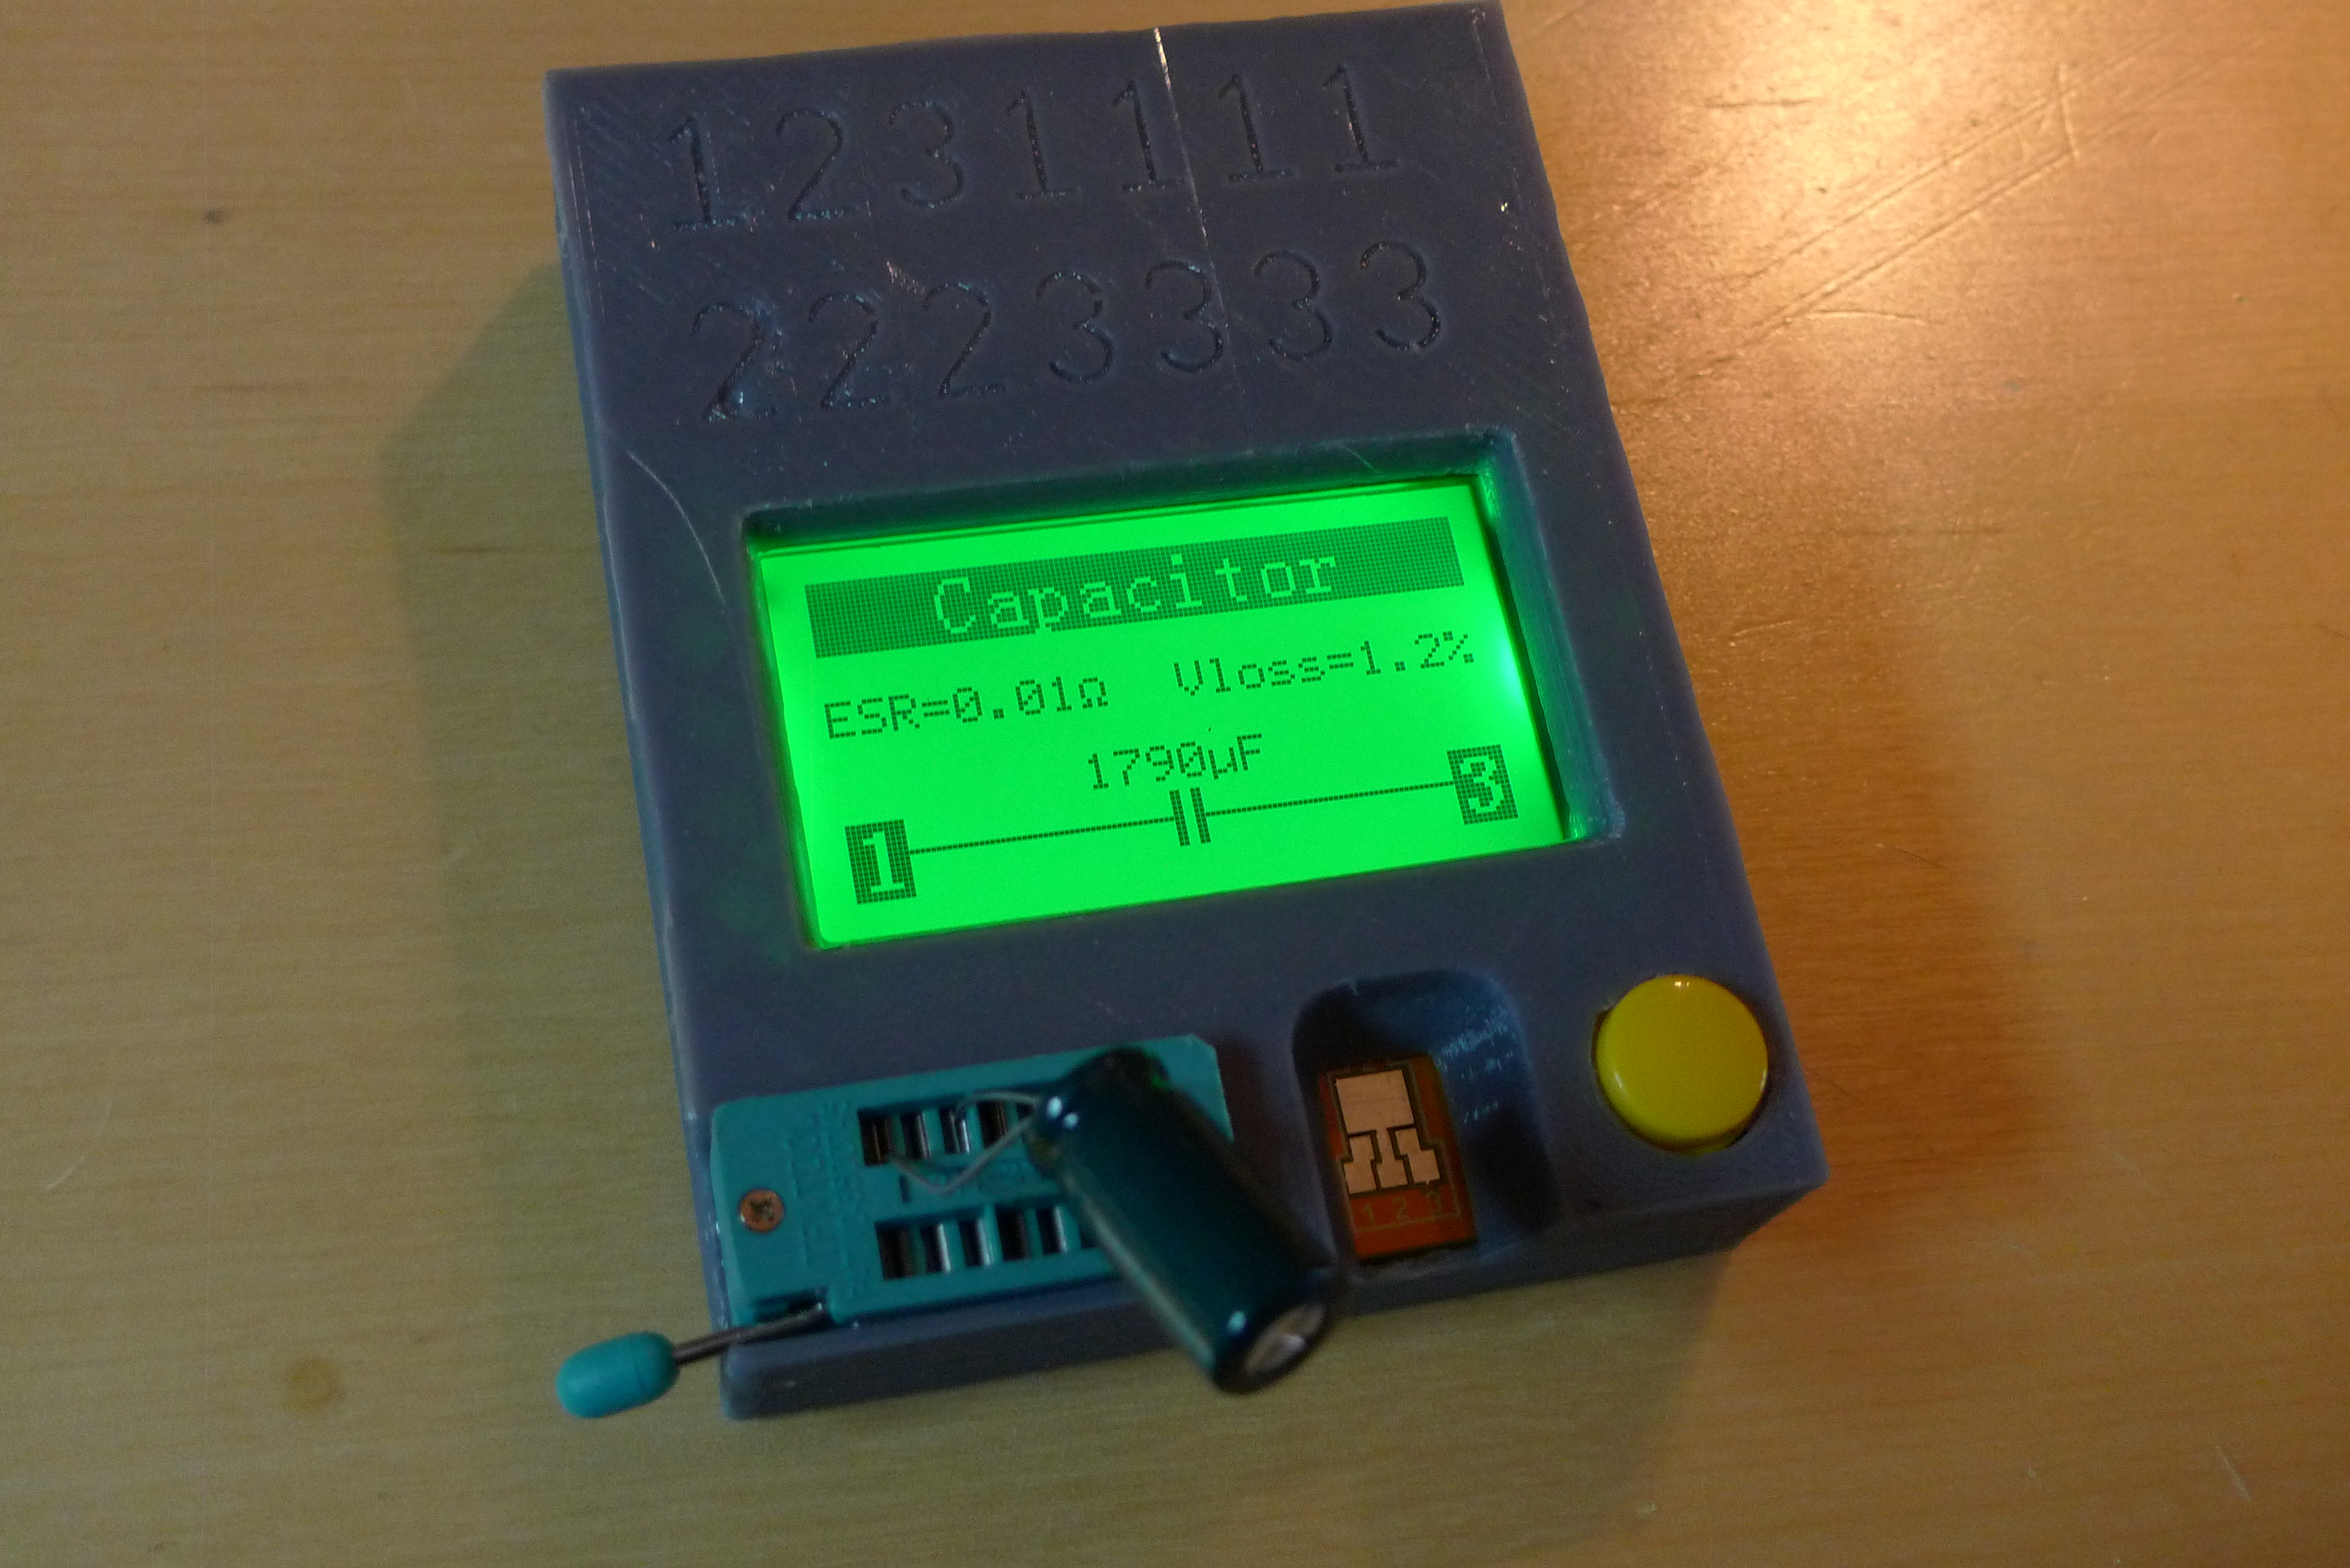 Case For Lcr T4 Component Tester By Egil Thingiverse Bridge Ebay May 2 2015 View Original